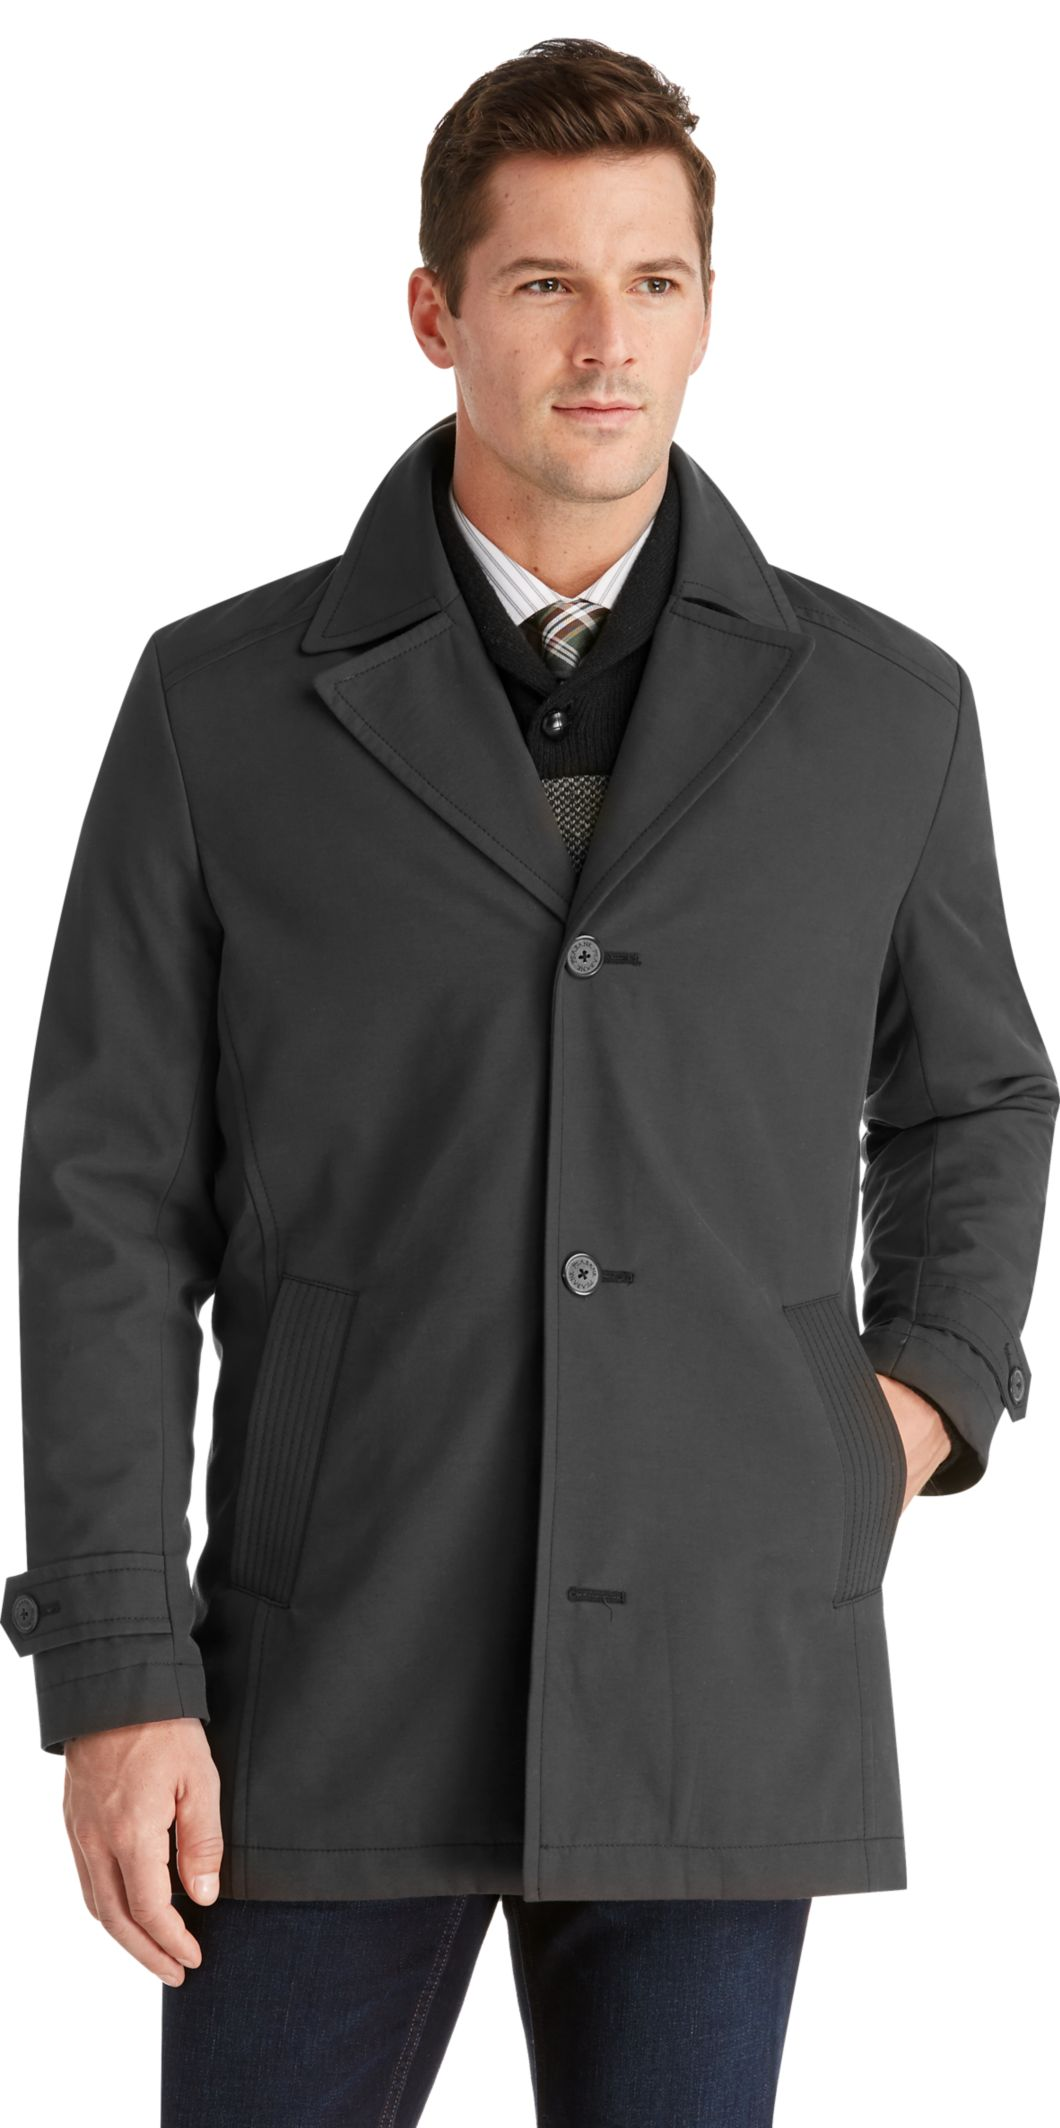 Car Coat Over Suit